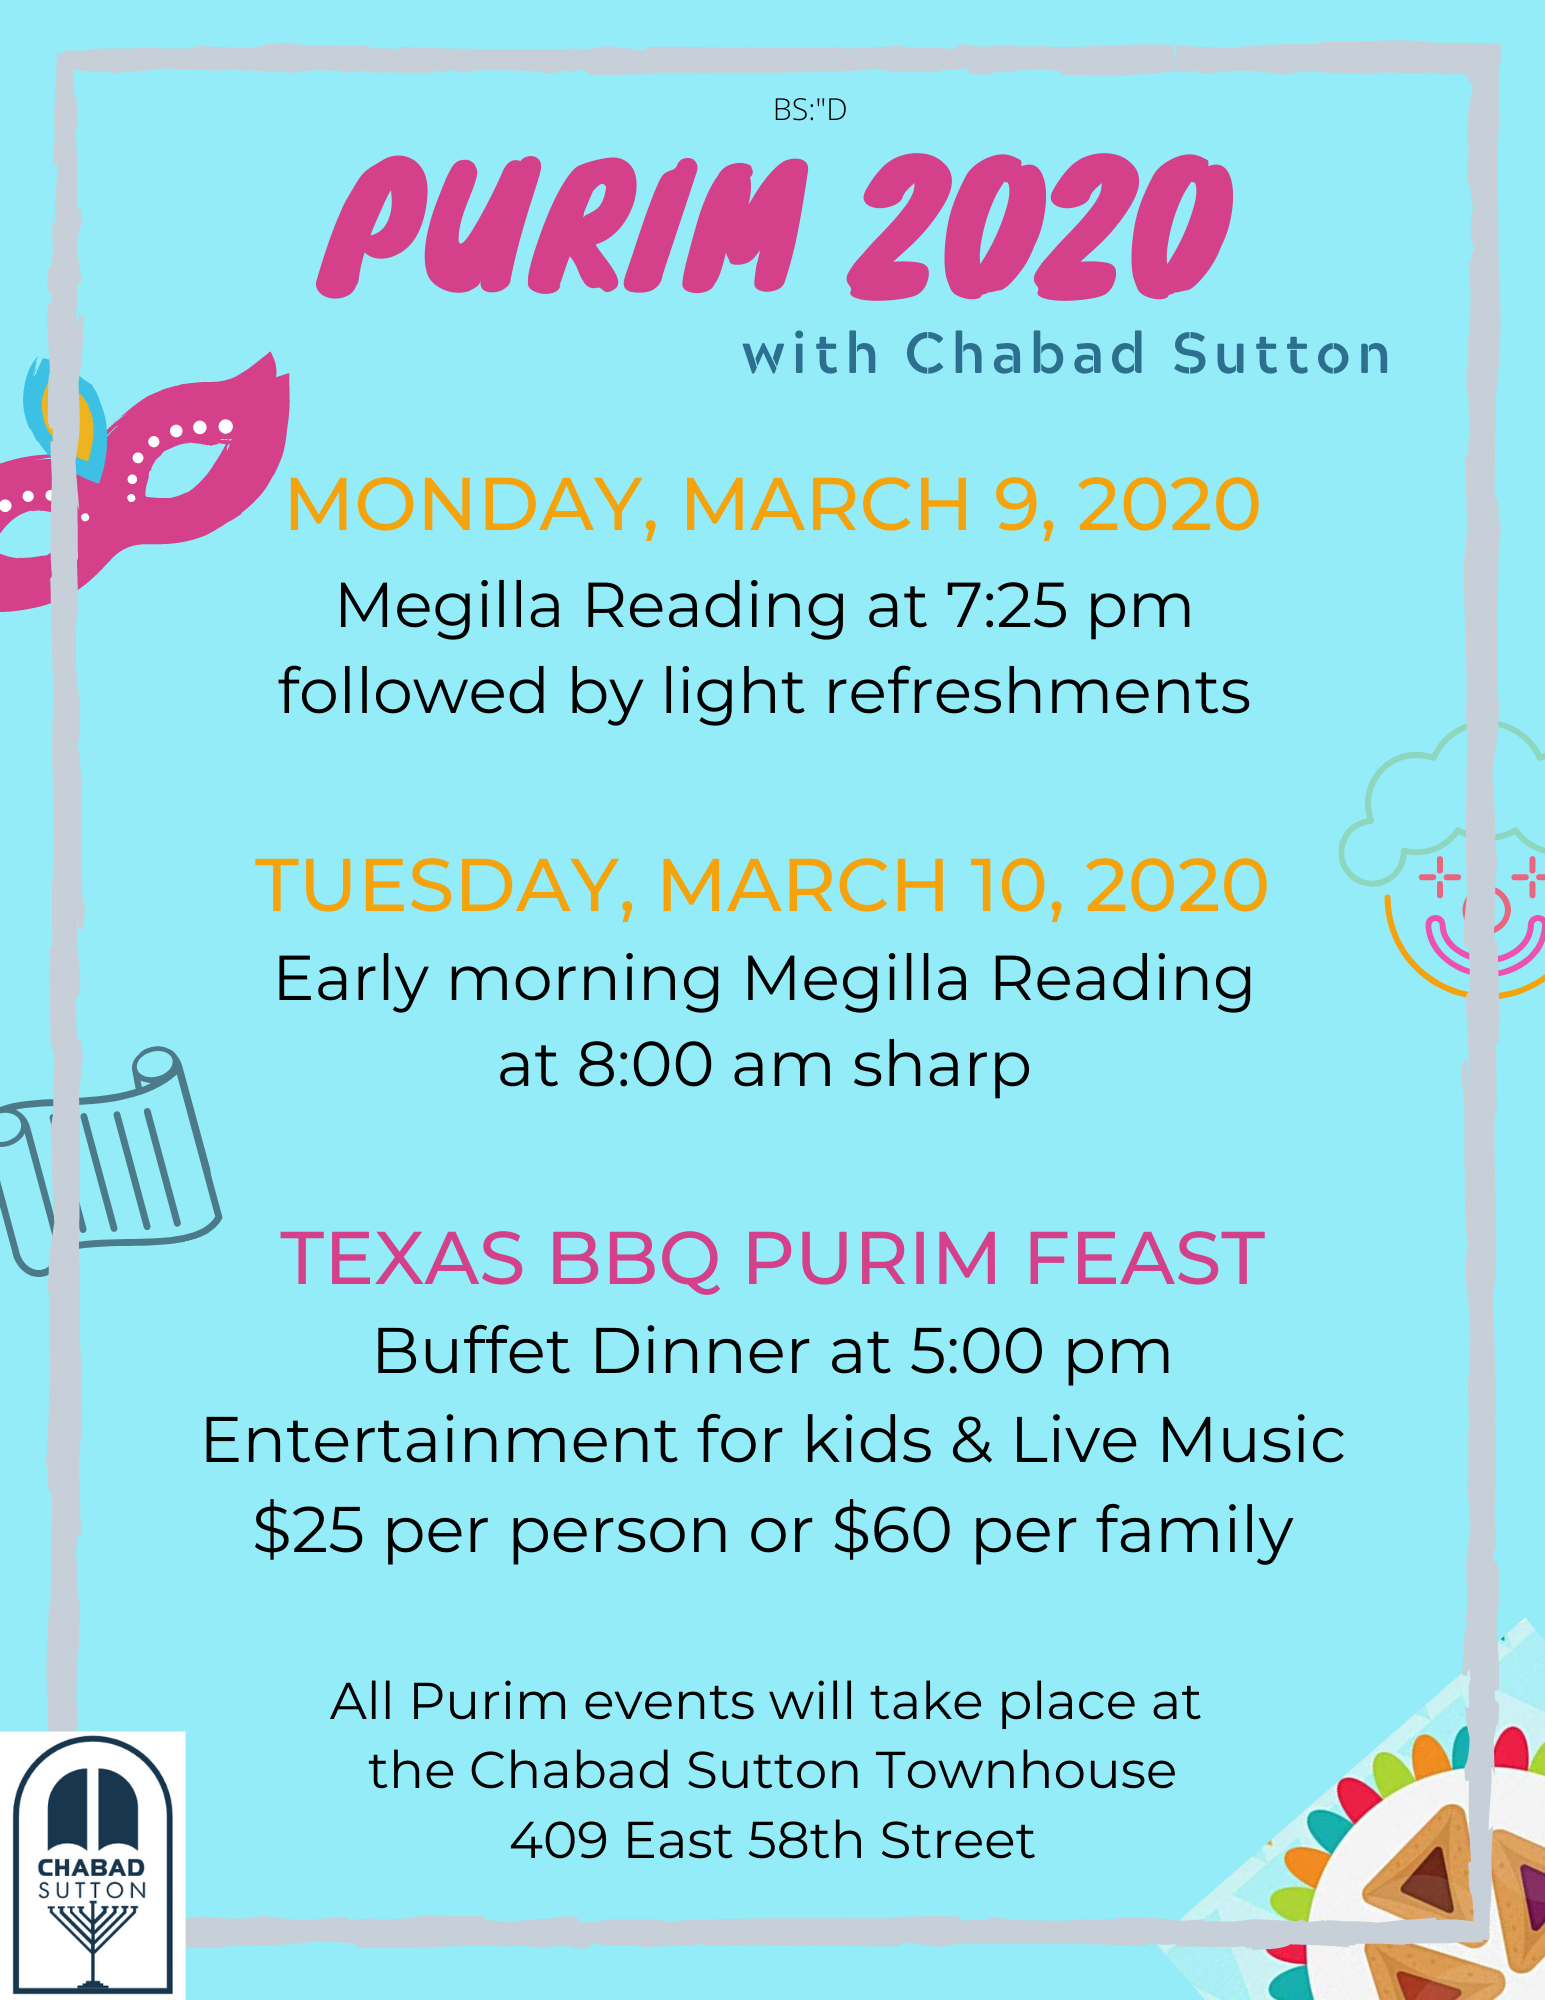 purim schedule (1).png